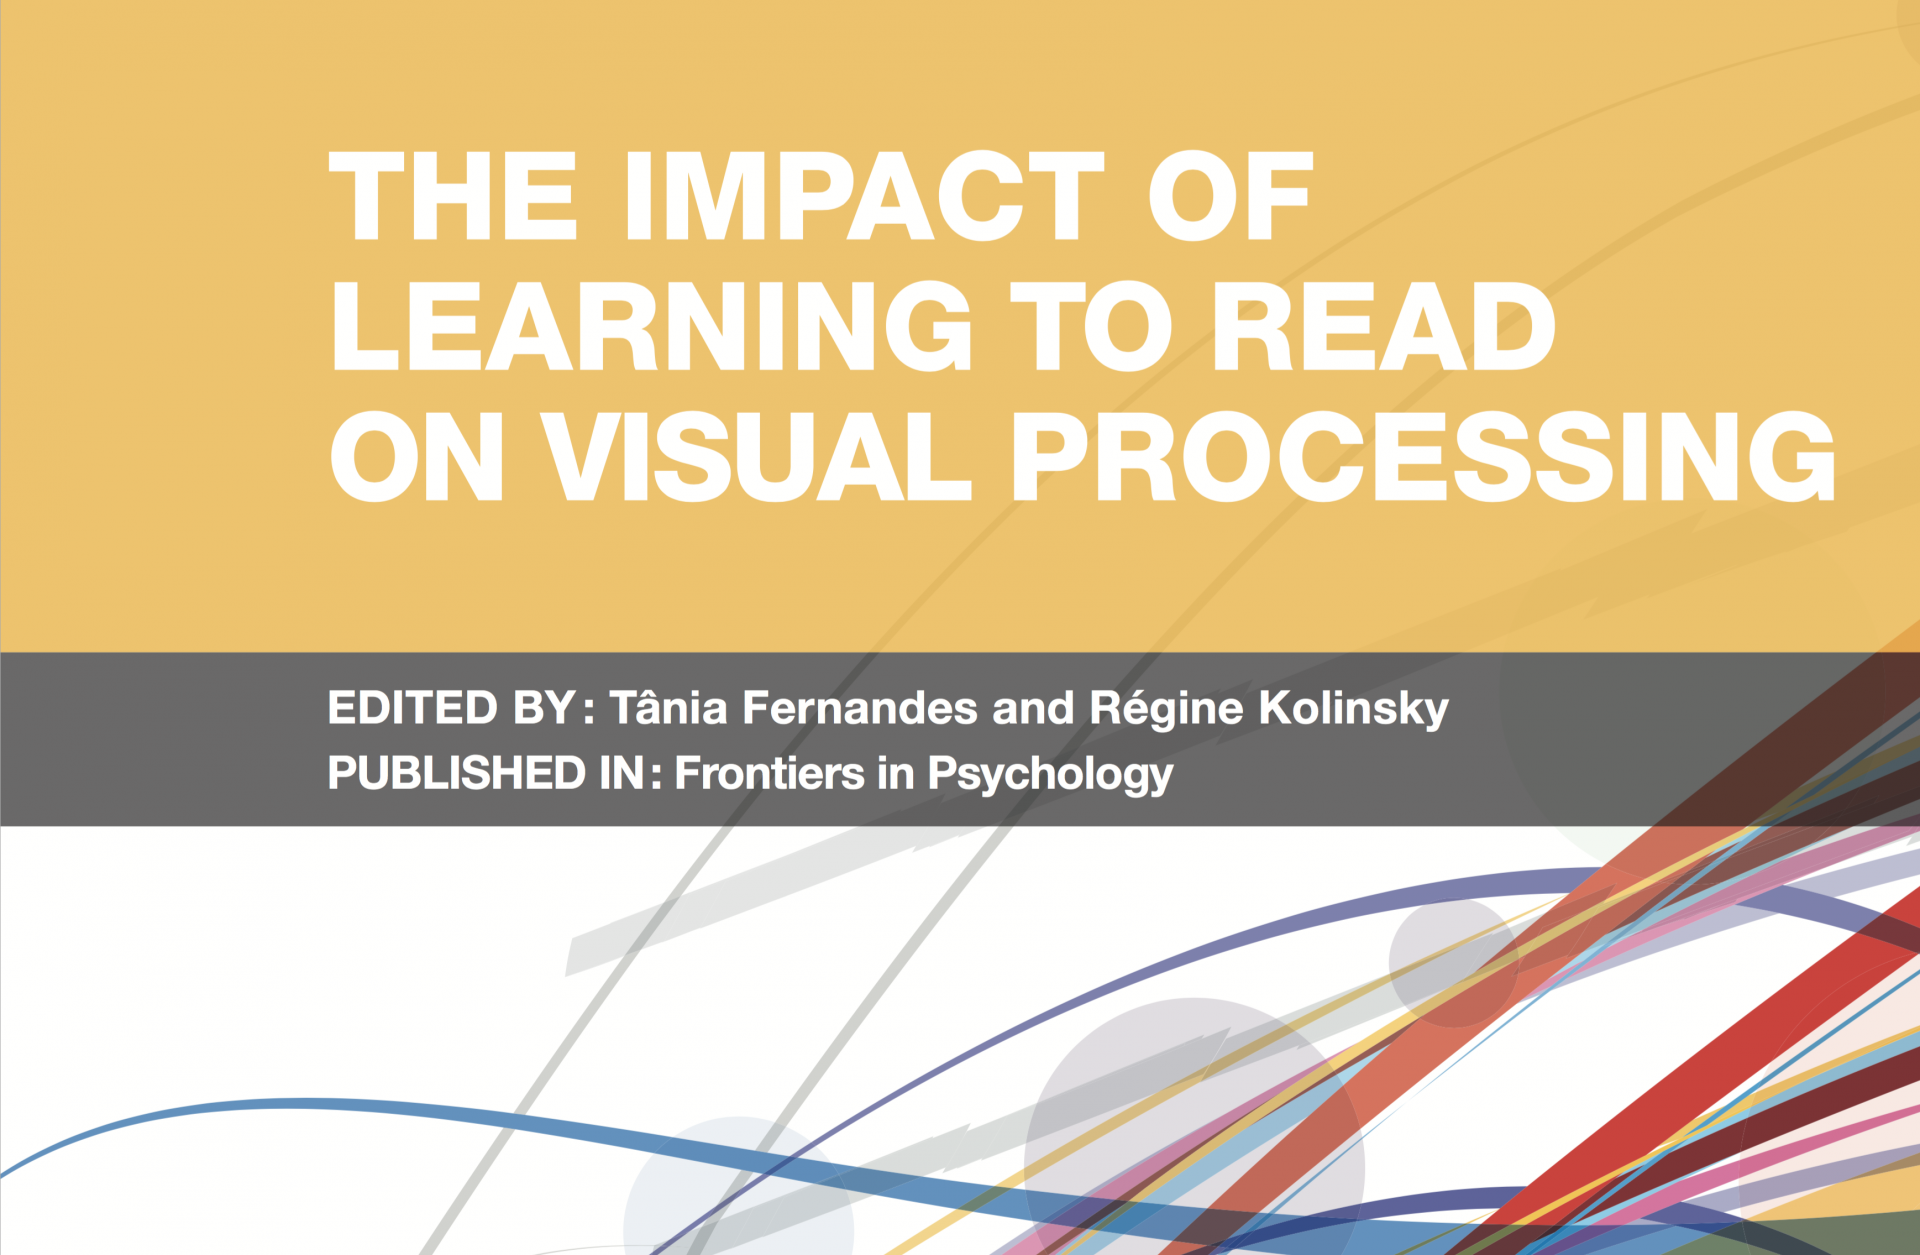 The impact of learning to read on visual processing: a Frontiers Research Topic co-edited by Régine Kolinsky